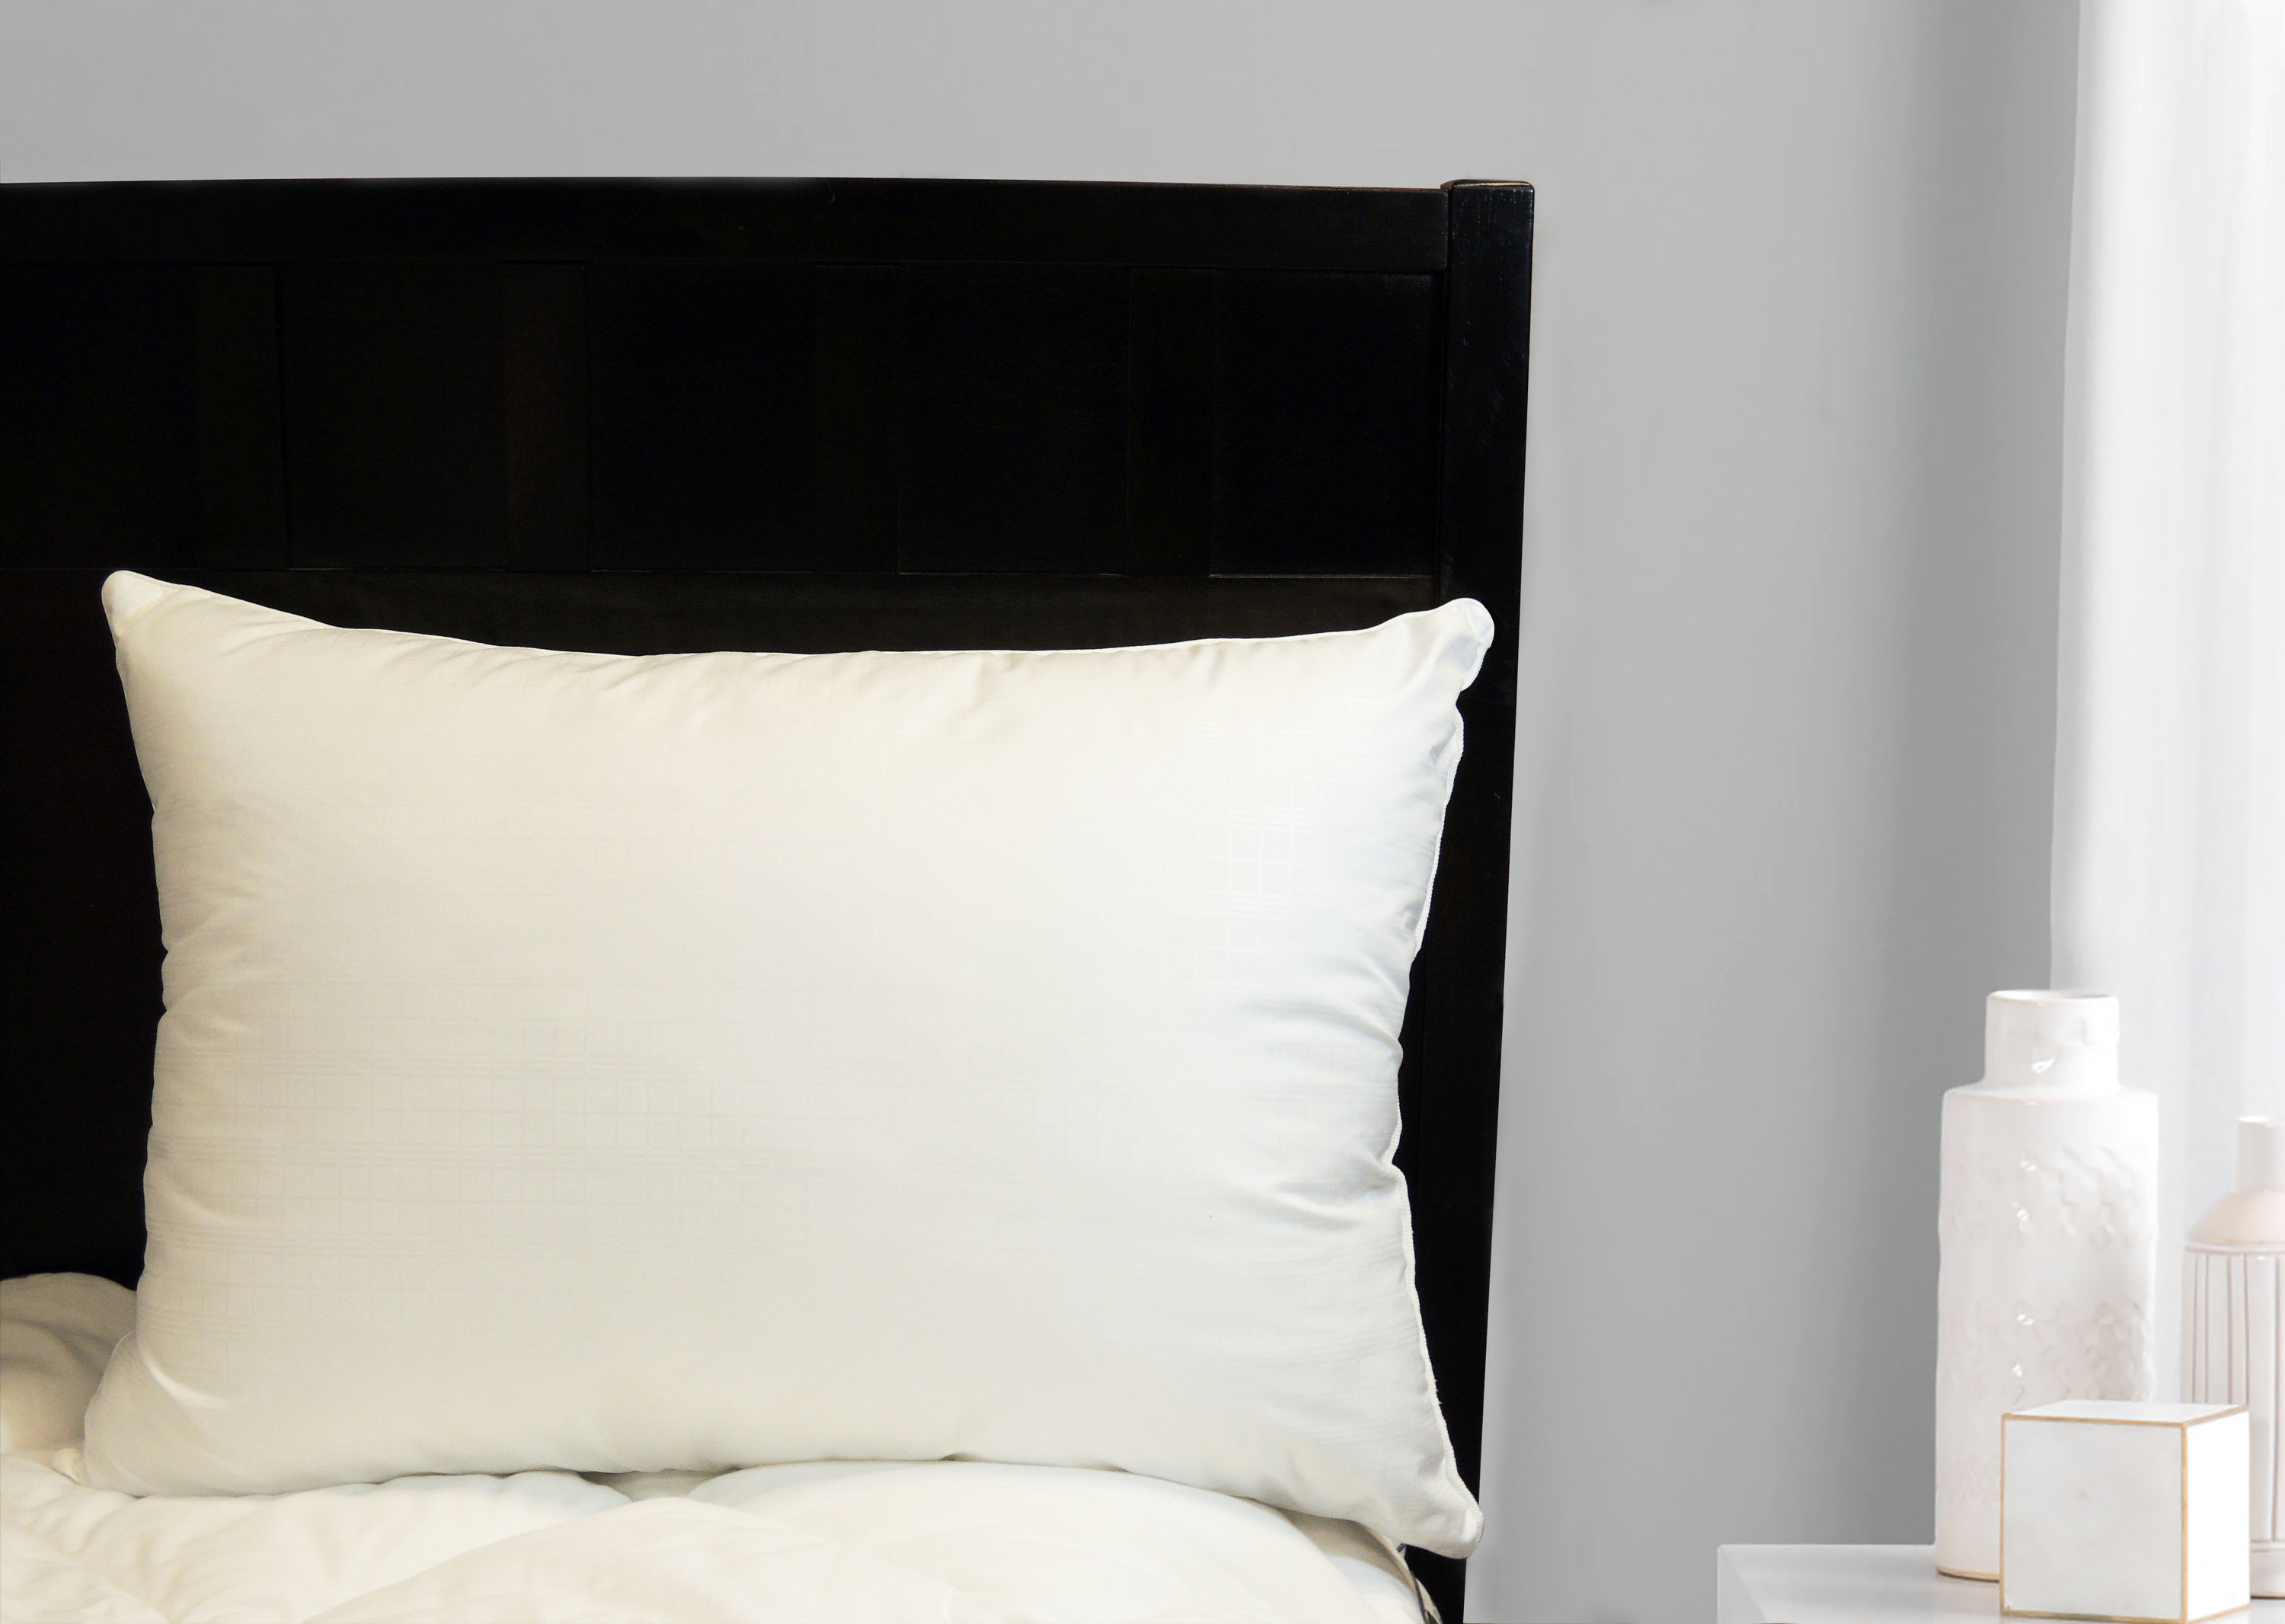 The pillow on a bed with a dark headboard